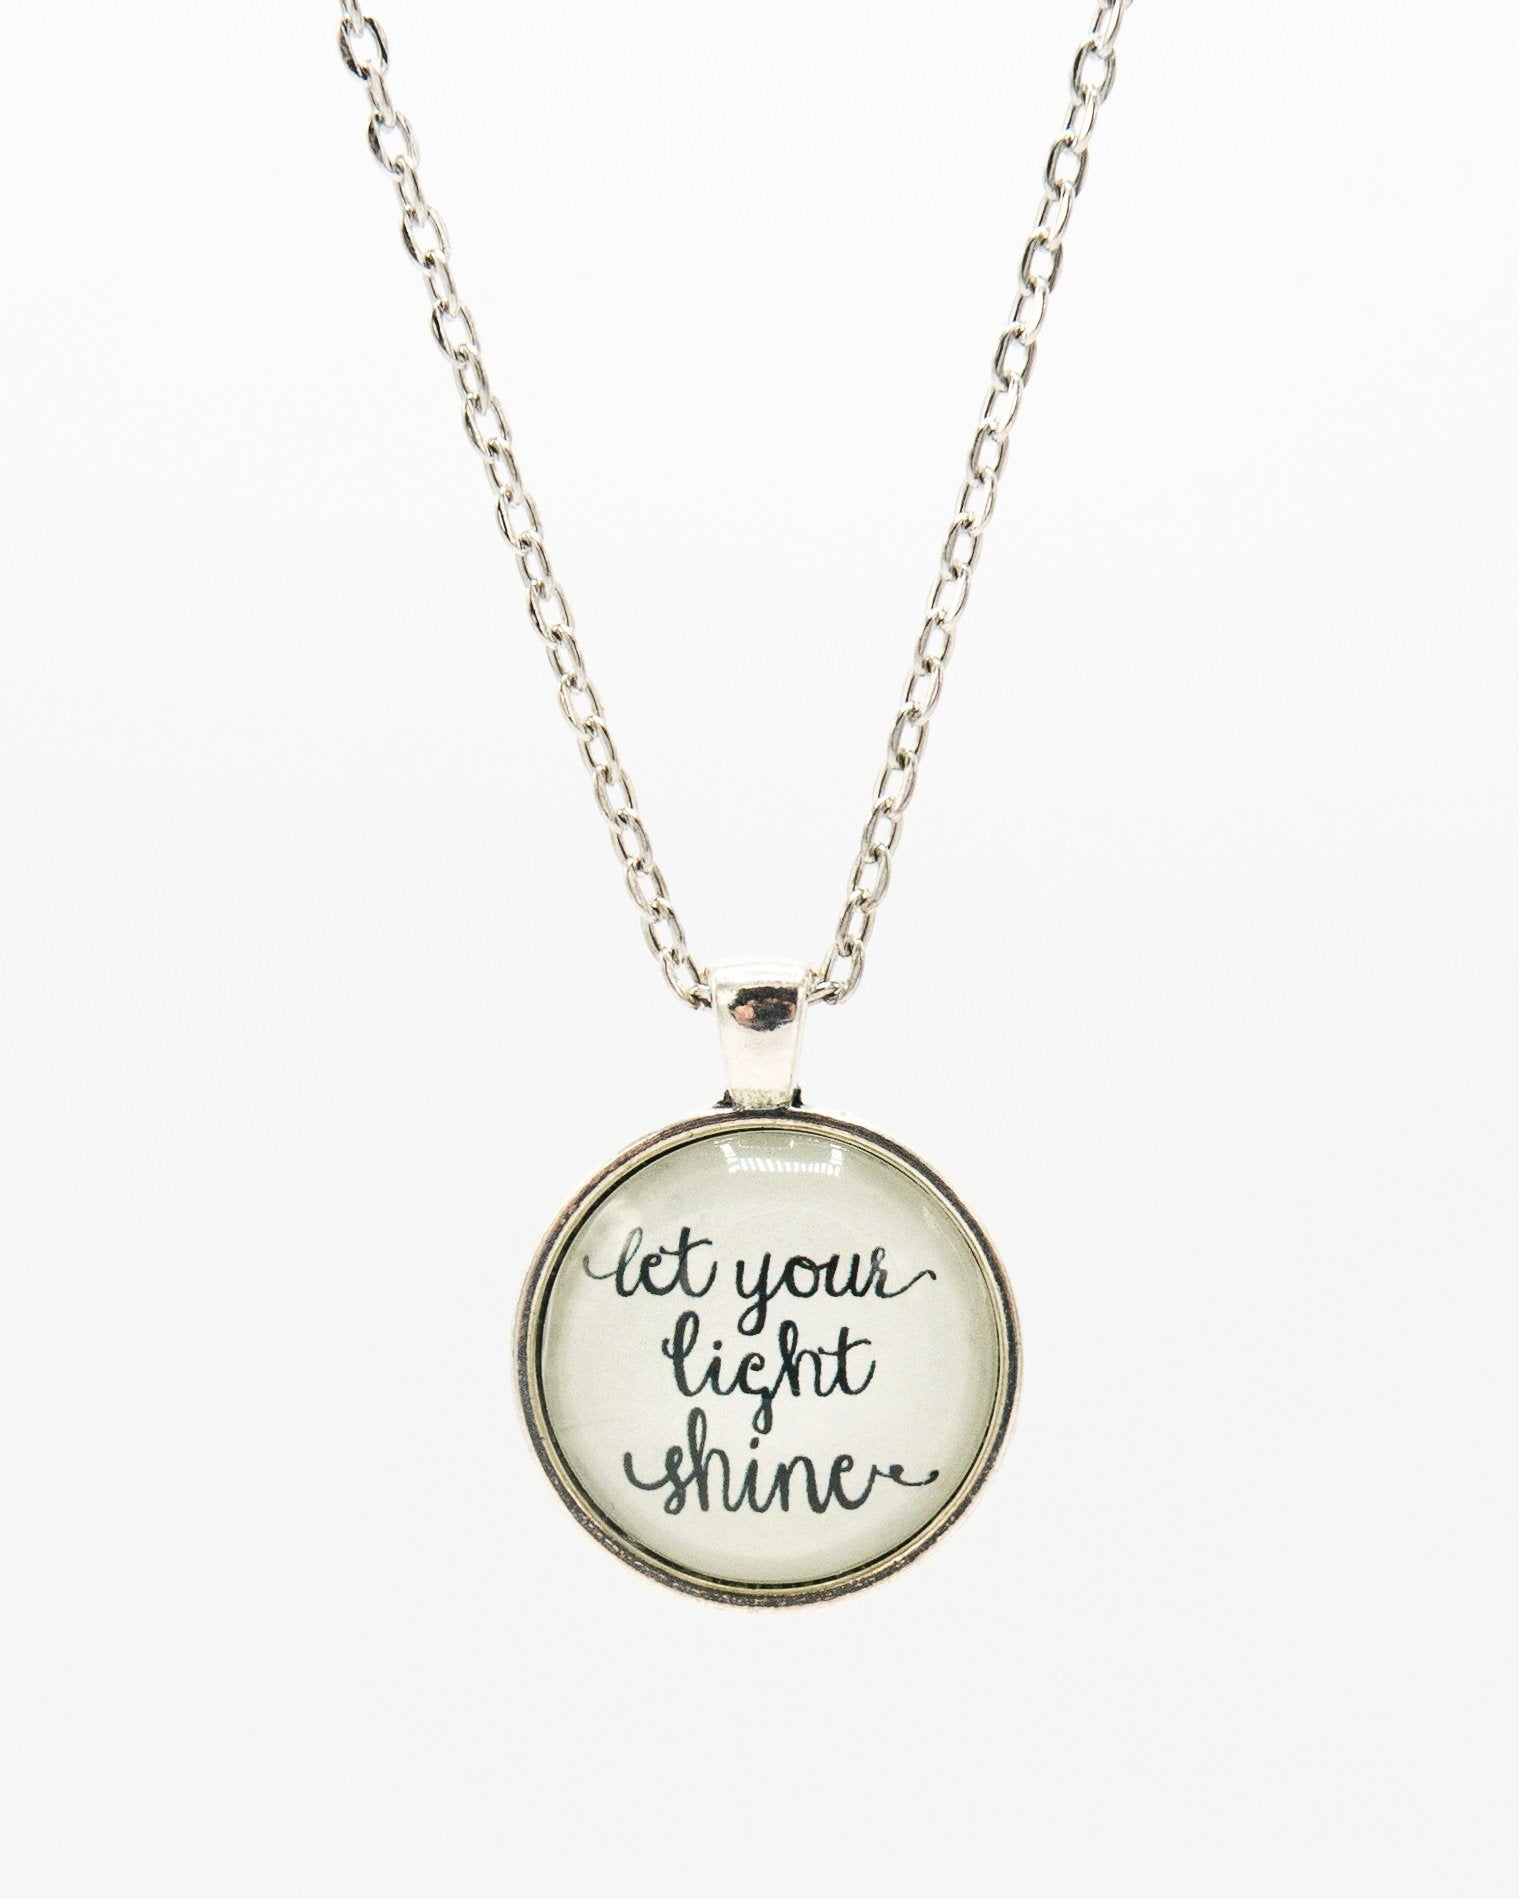 Inspirational Silver Long Pendant Necklace